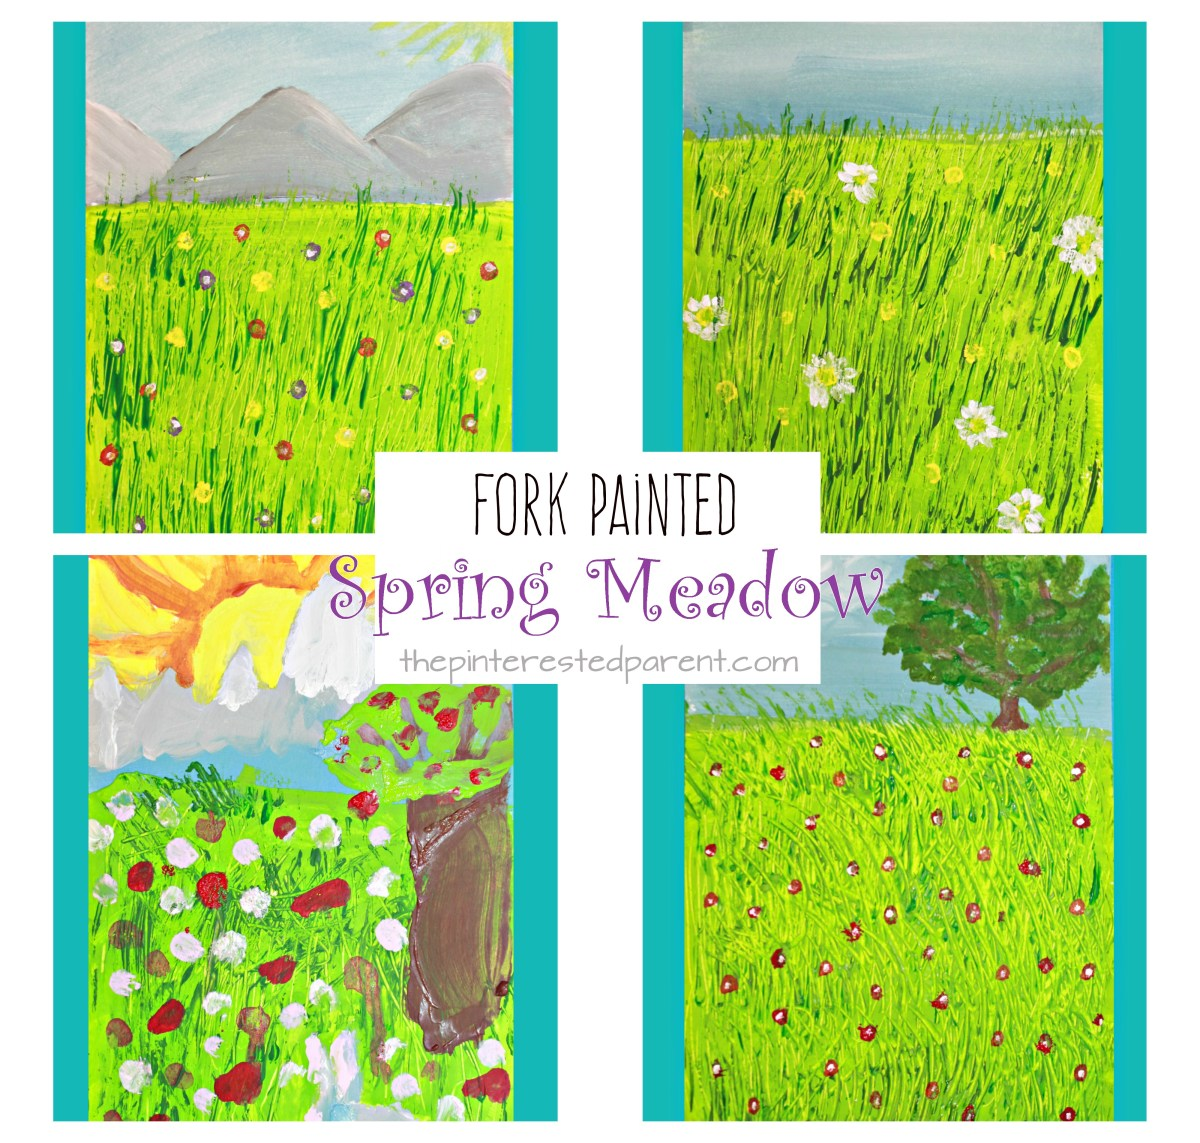 Fork Painted Spring Meadow